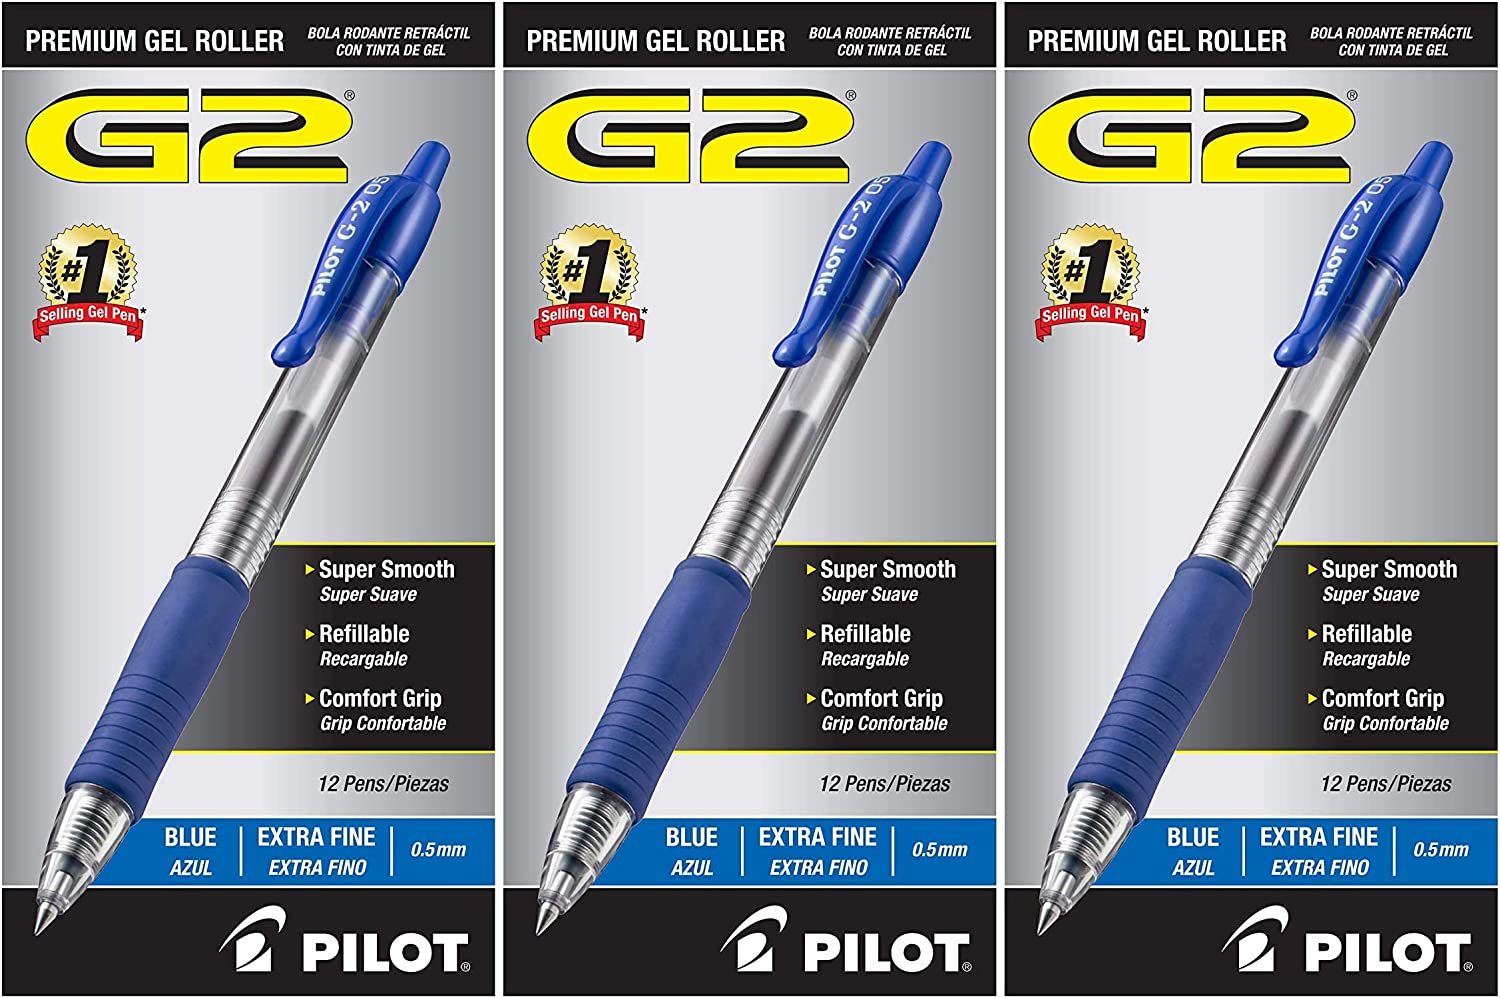 12 Count Premium Refillable /& Retractable Rolling Ball Gel Pens Product Dimensions: 1 x 2.8 x 5.75 inches Blue Ink